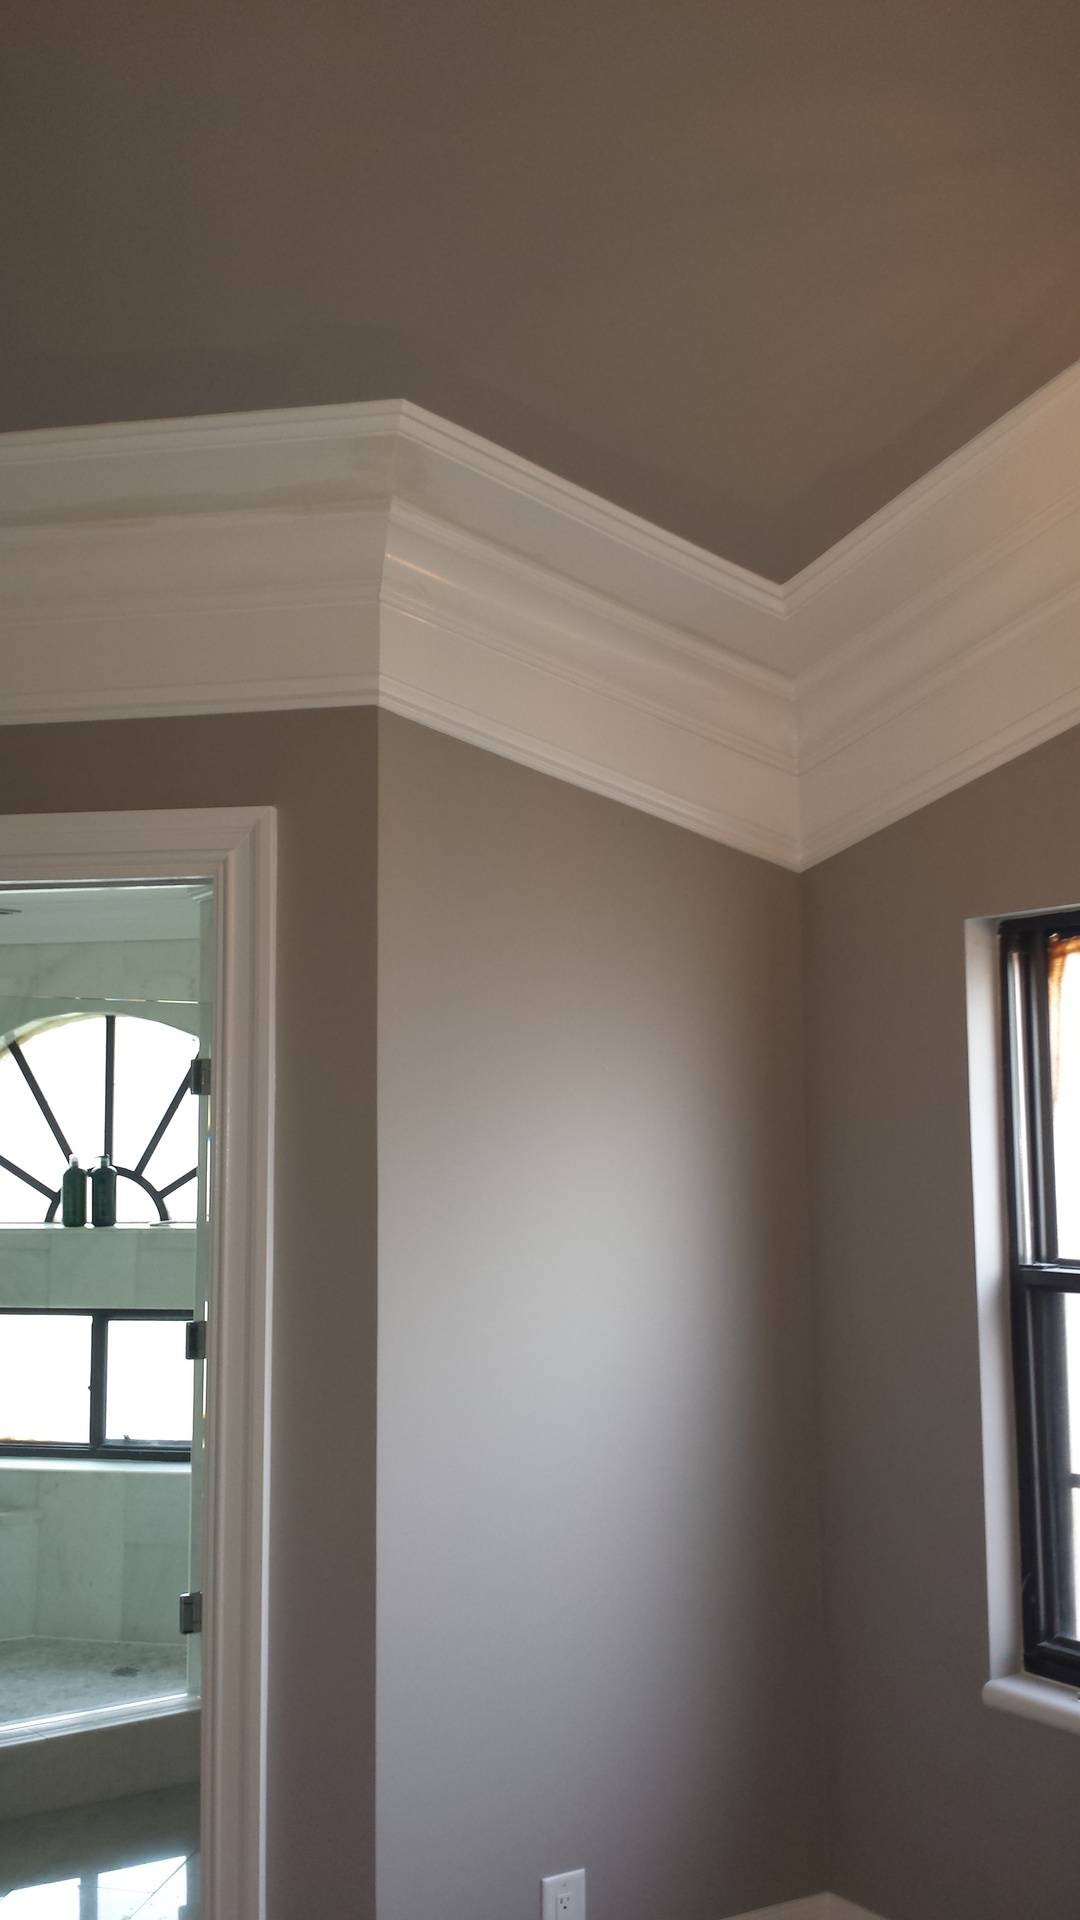 3 Step Crown Molding